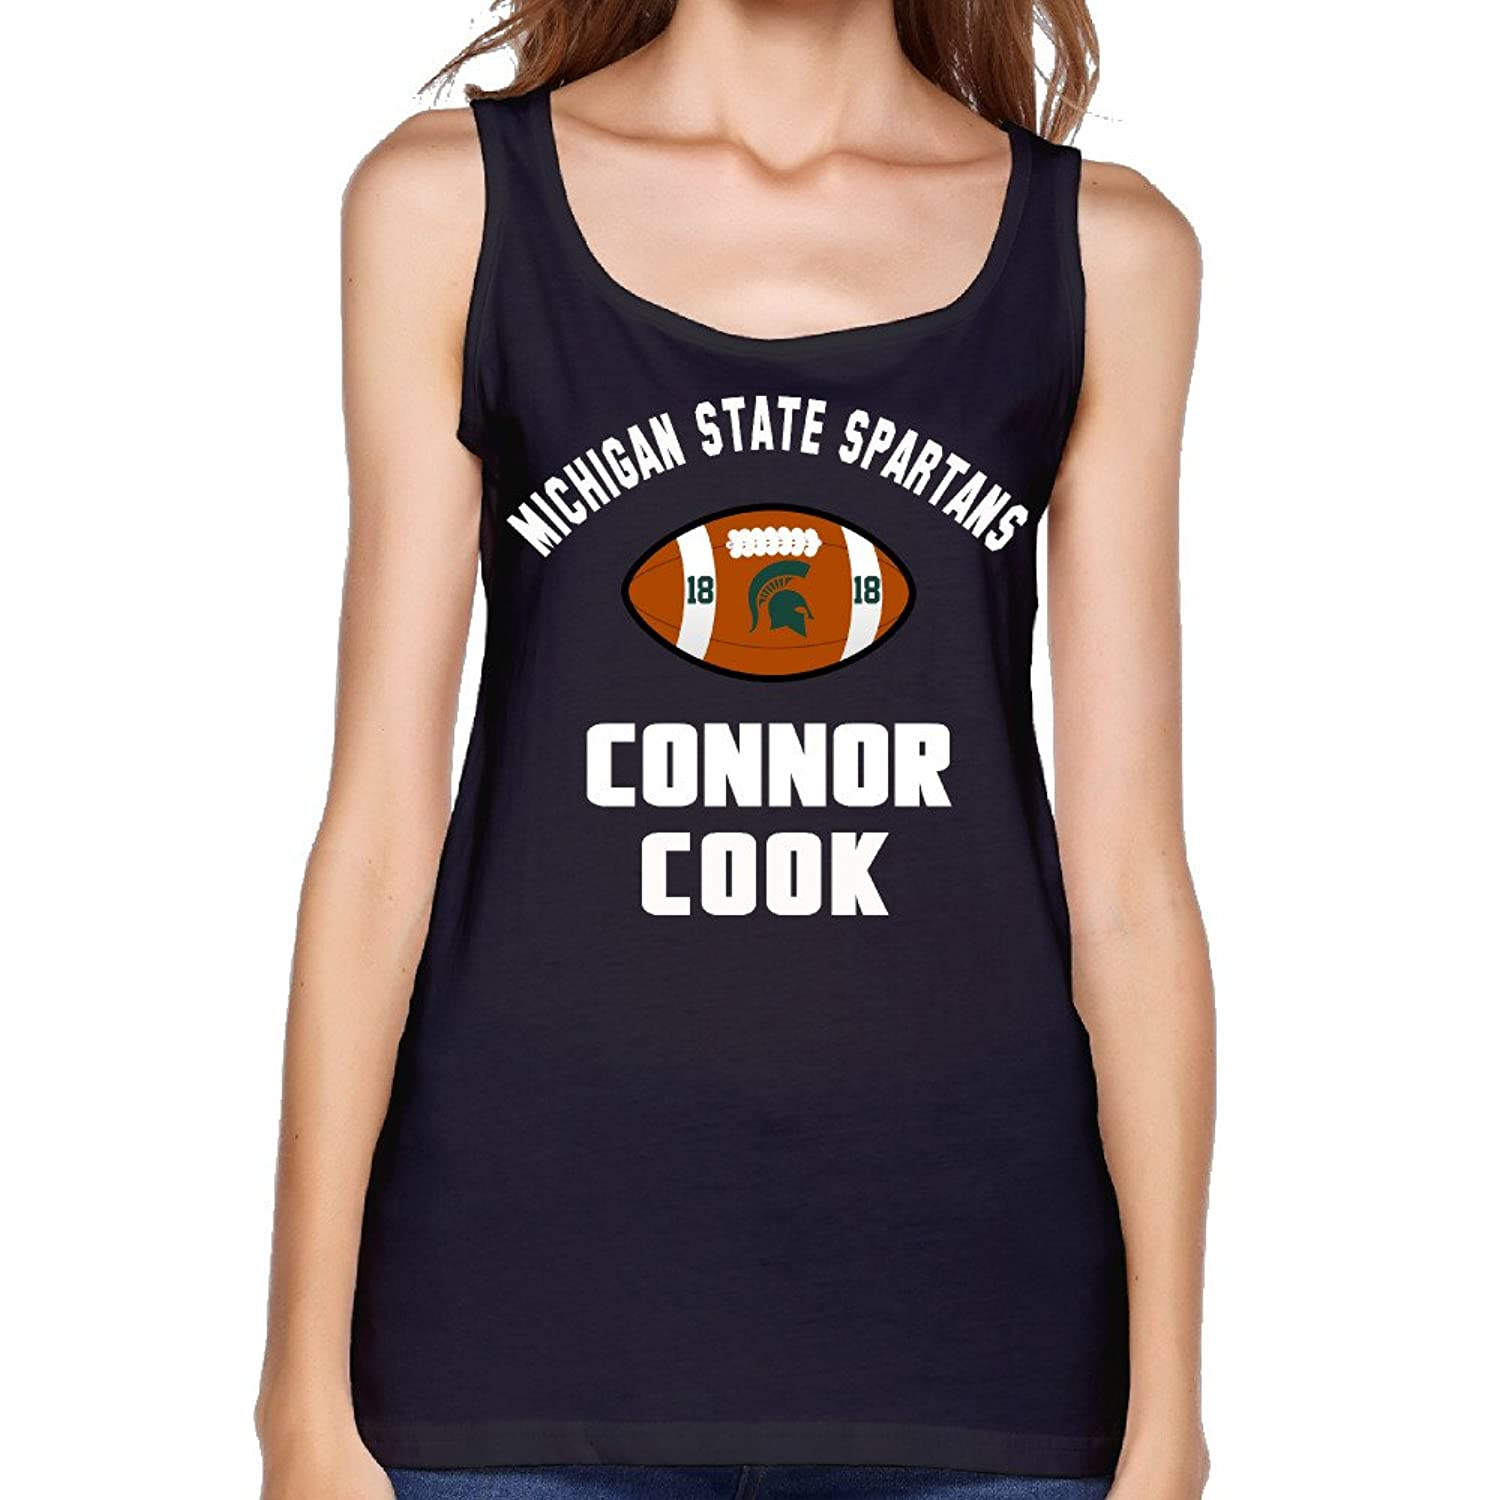 Women's Michigan State Spartans Connor Cook Football Tank Top-